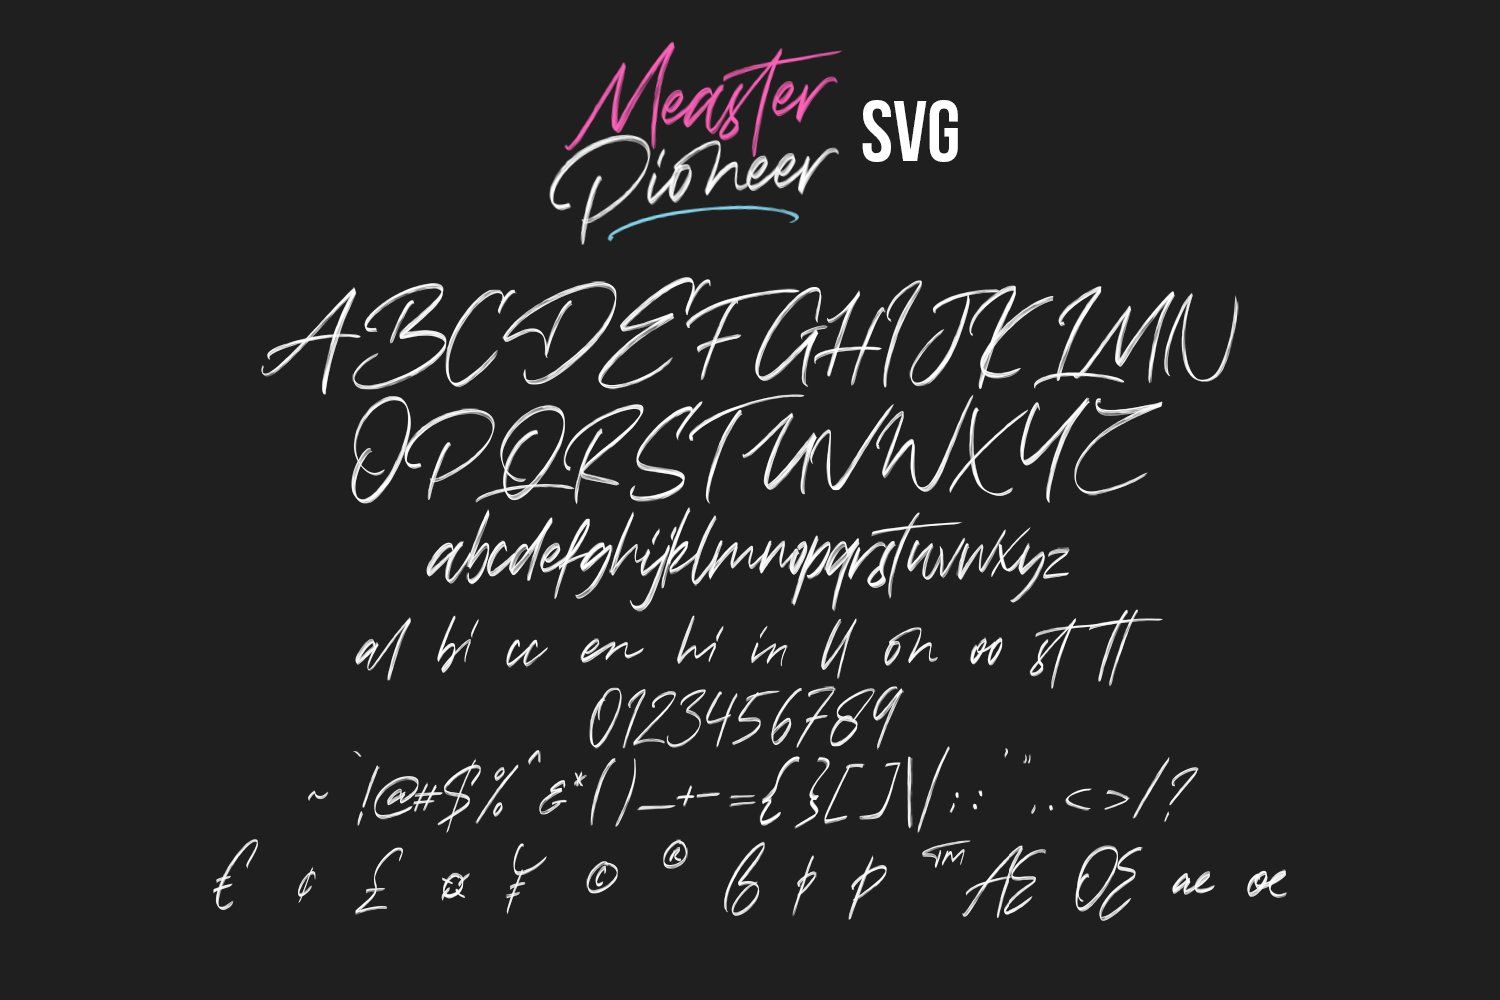 Measter Pioneer SVG Brush Font example image 10